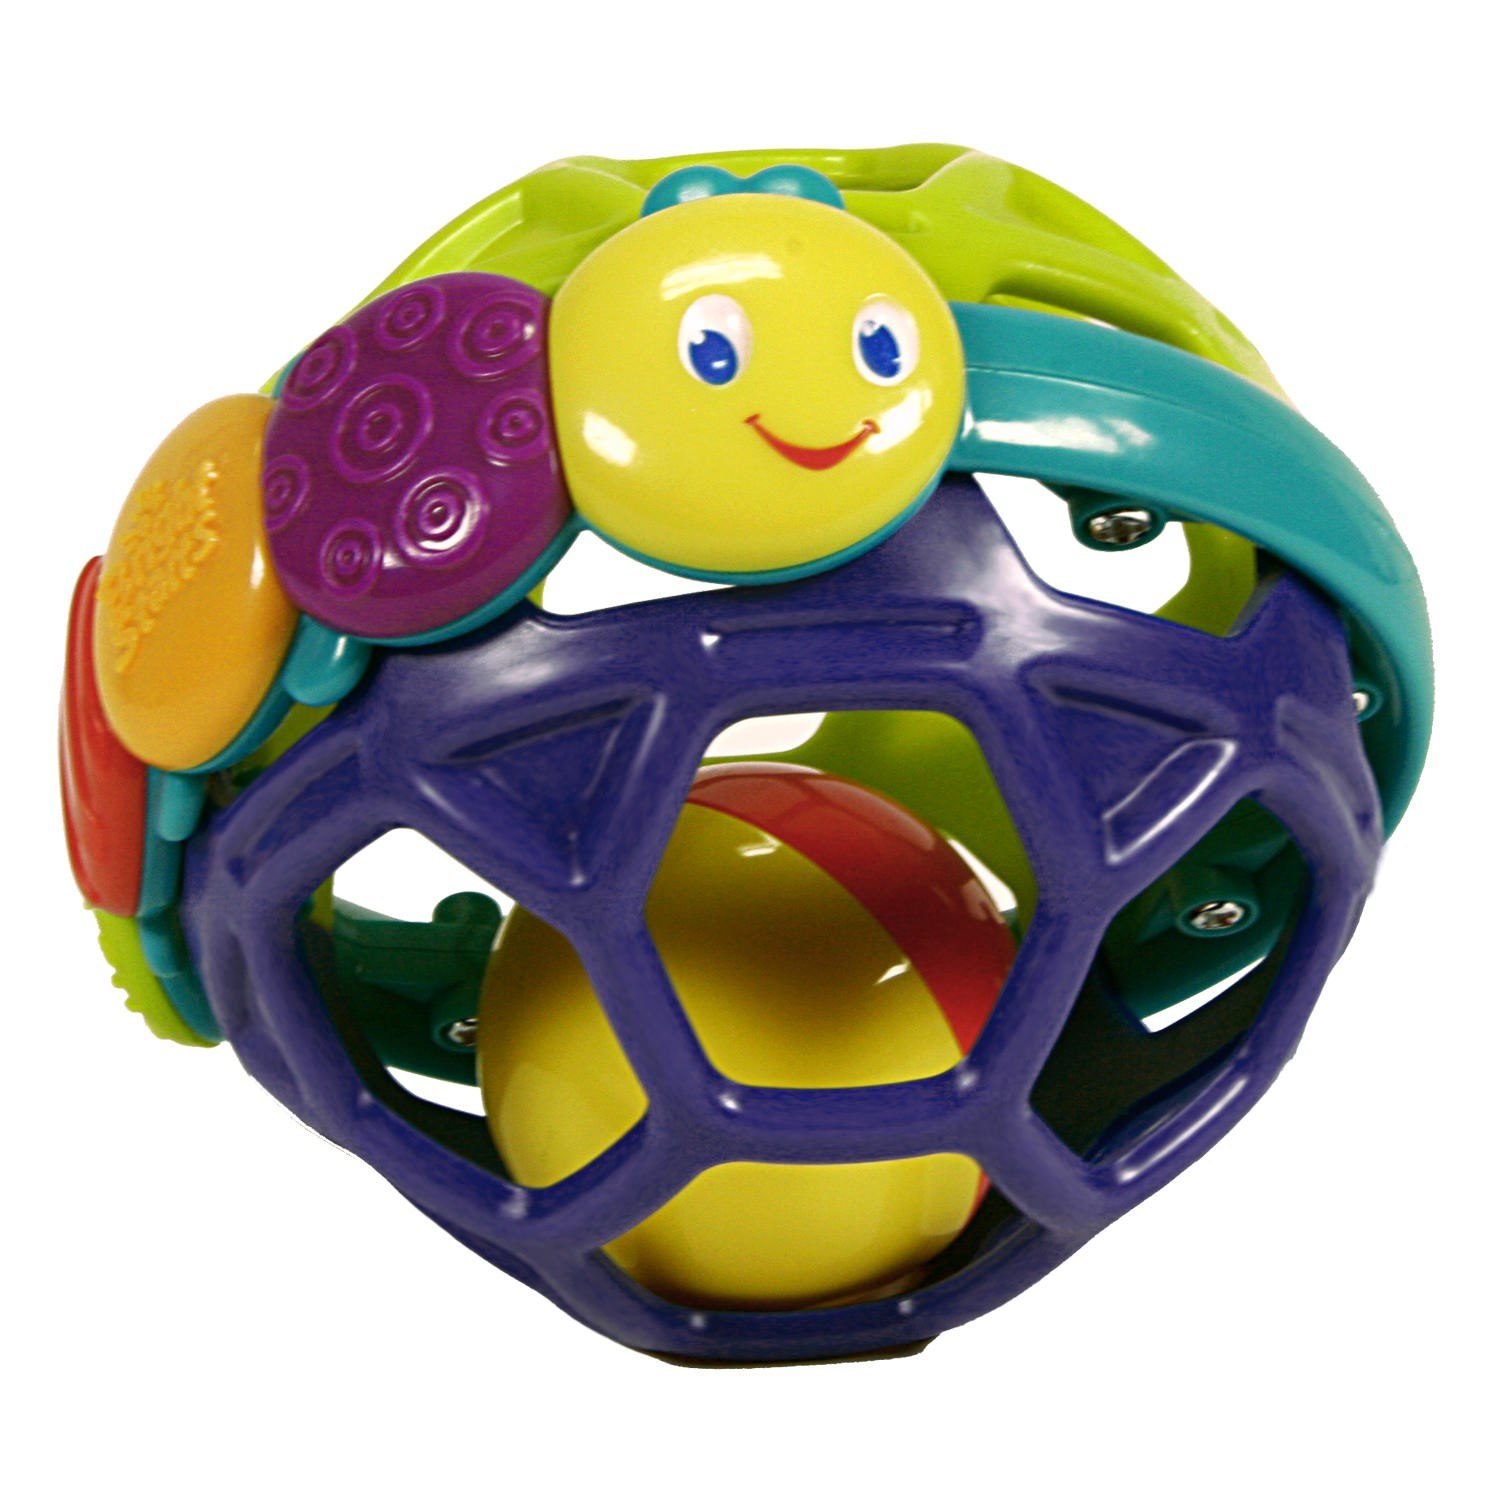 Bright Starts Flexi Ball Toy